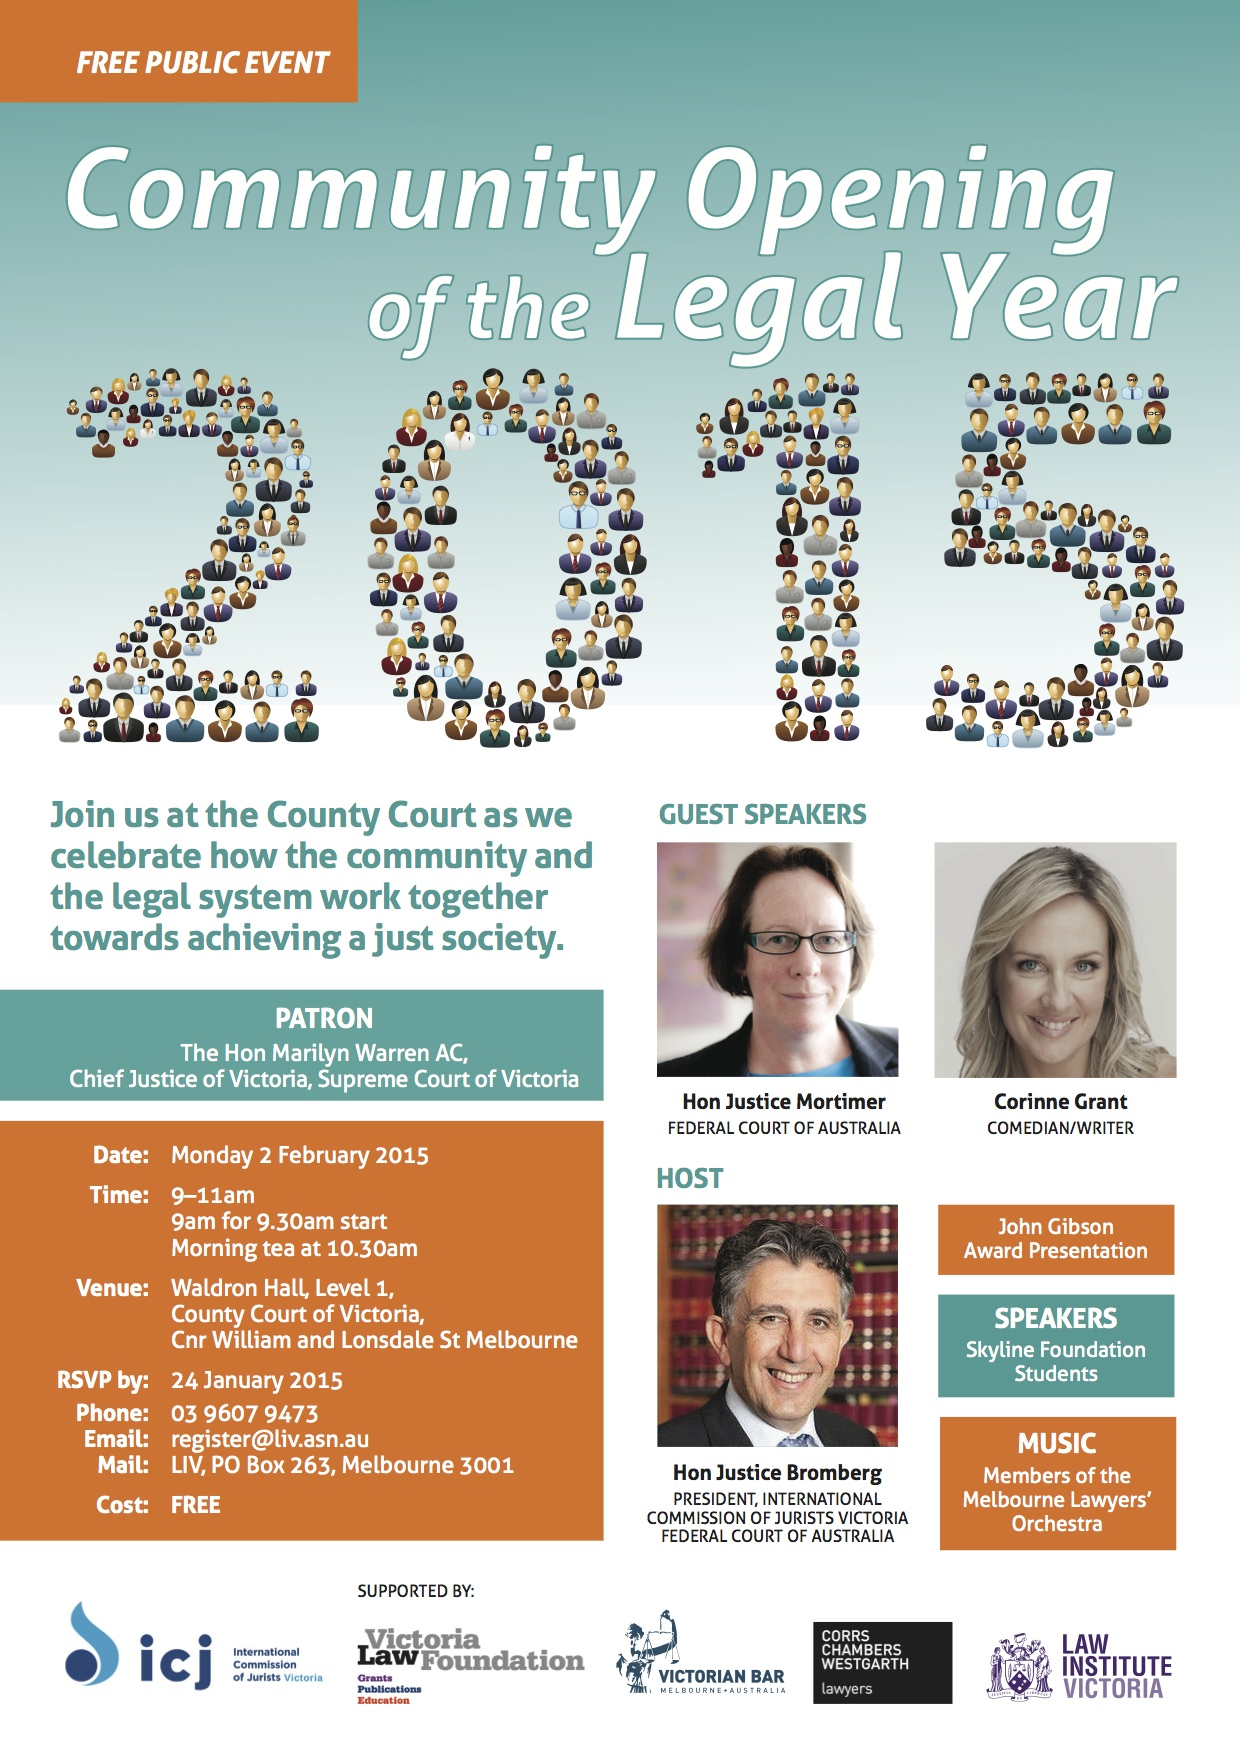 Hosted by ICJ President, Hon Justice Bromberg. Guest speakers are the Hon Justice Debbie Mortimer and Corinne Grant, comedienne.